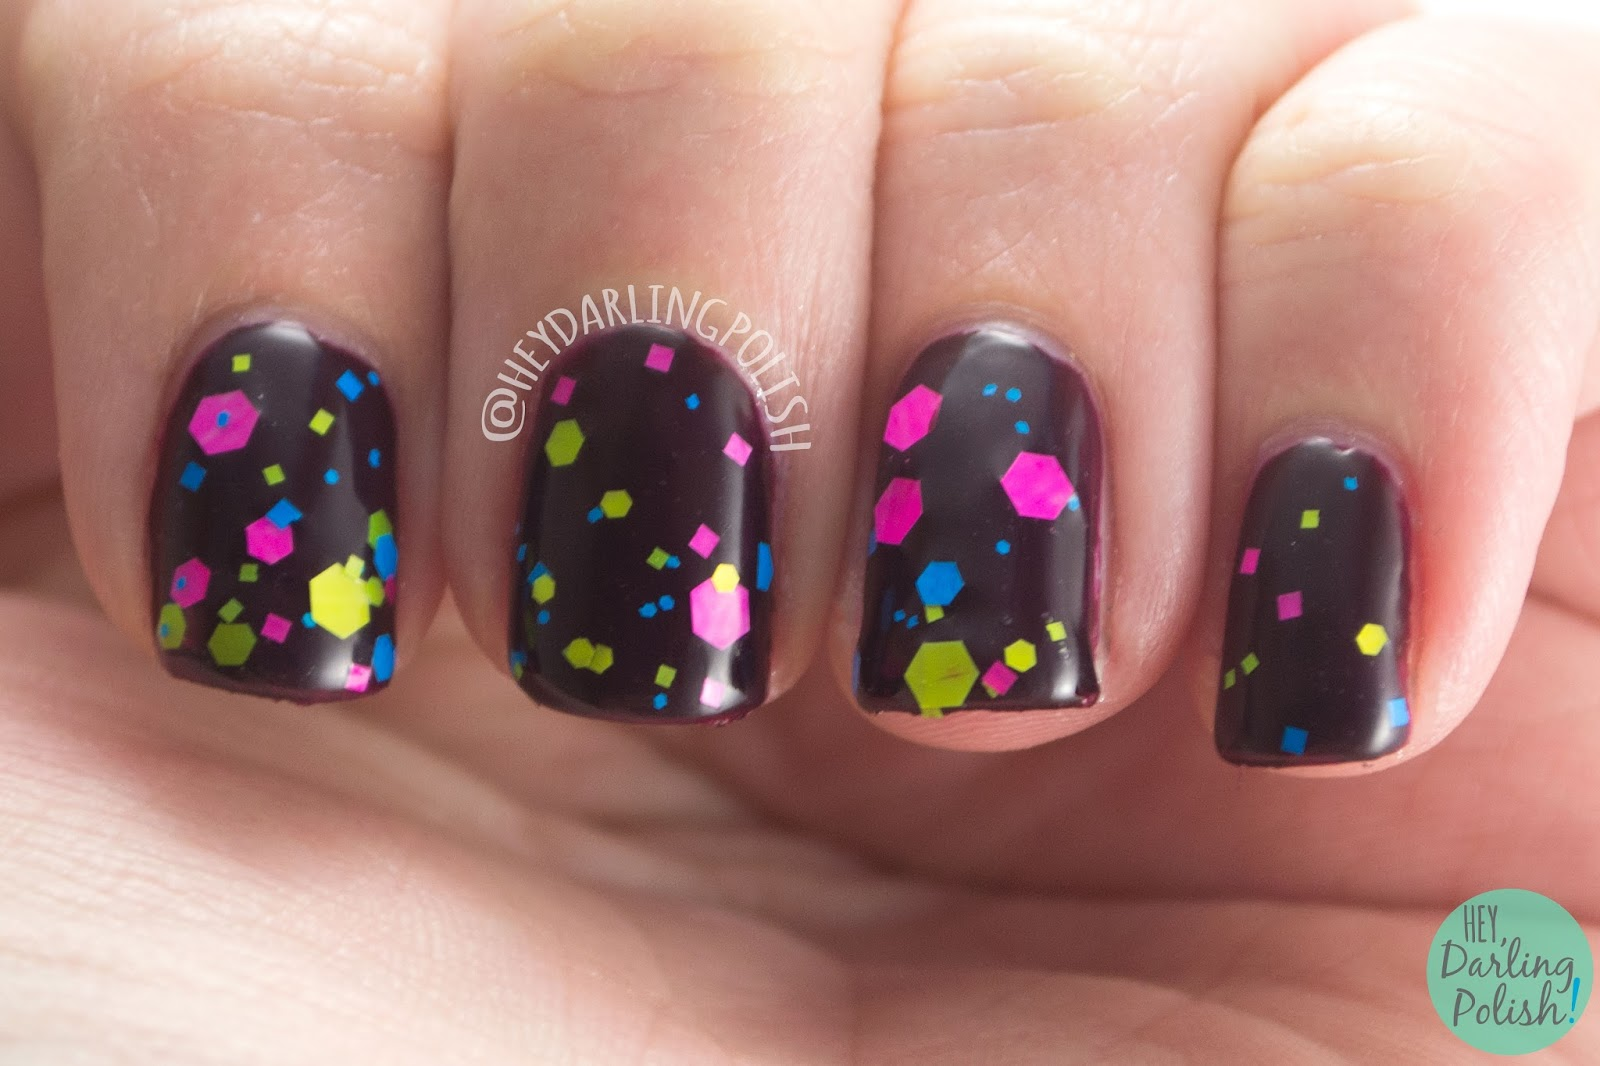 neon, glitter, science, noble gases, nails, nail polish, swatch, indie polish, indie, indie nail polish, parallax polish, hey darling polish